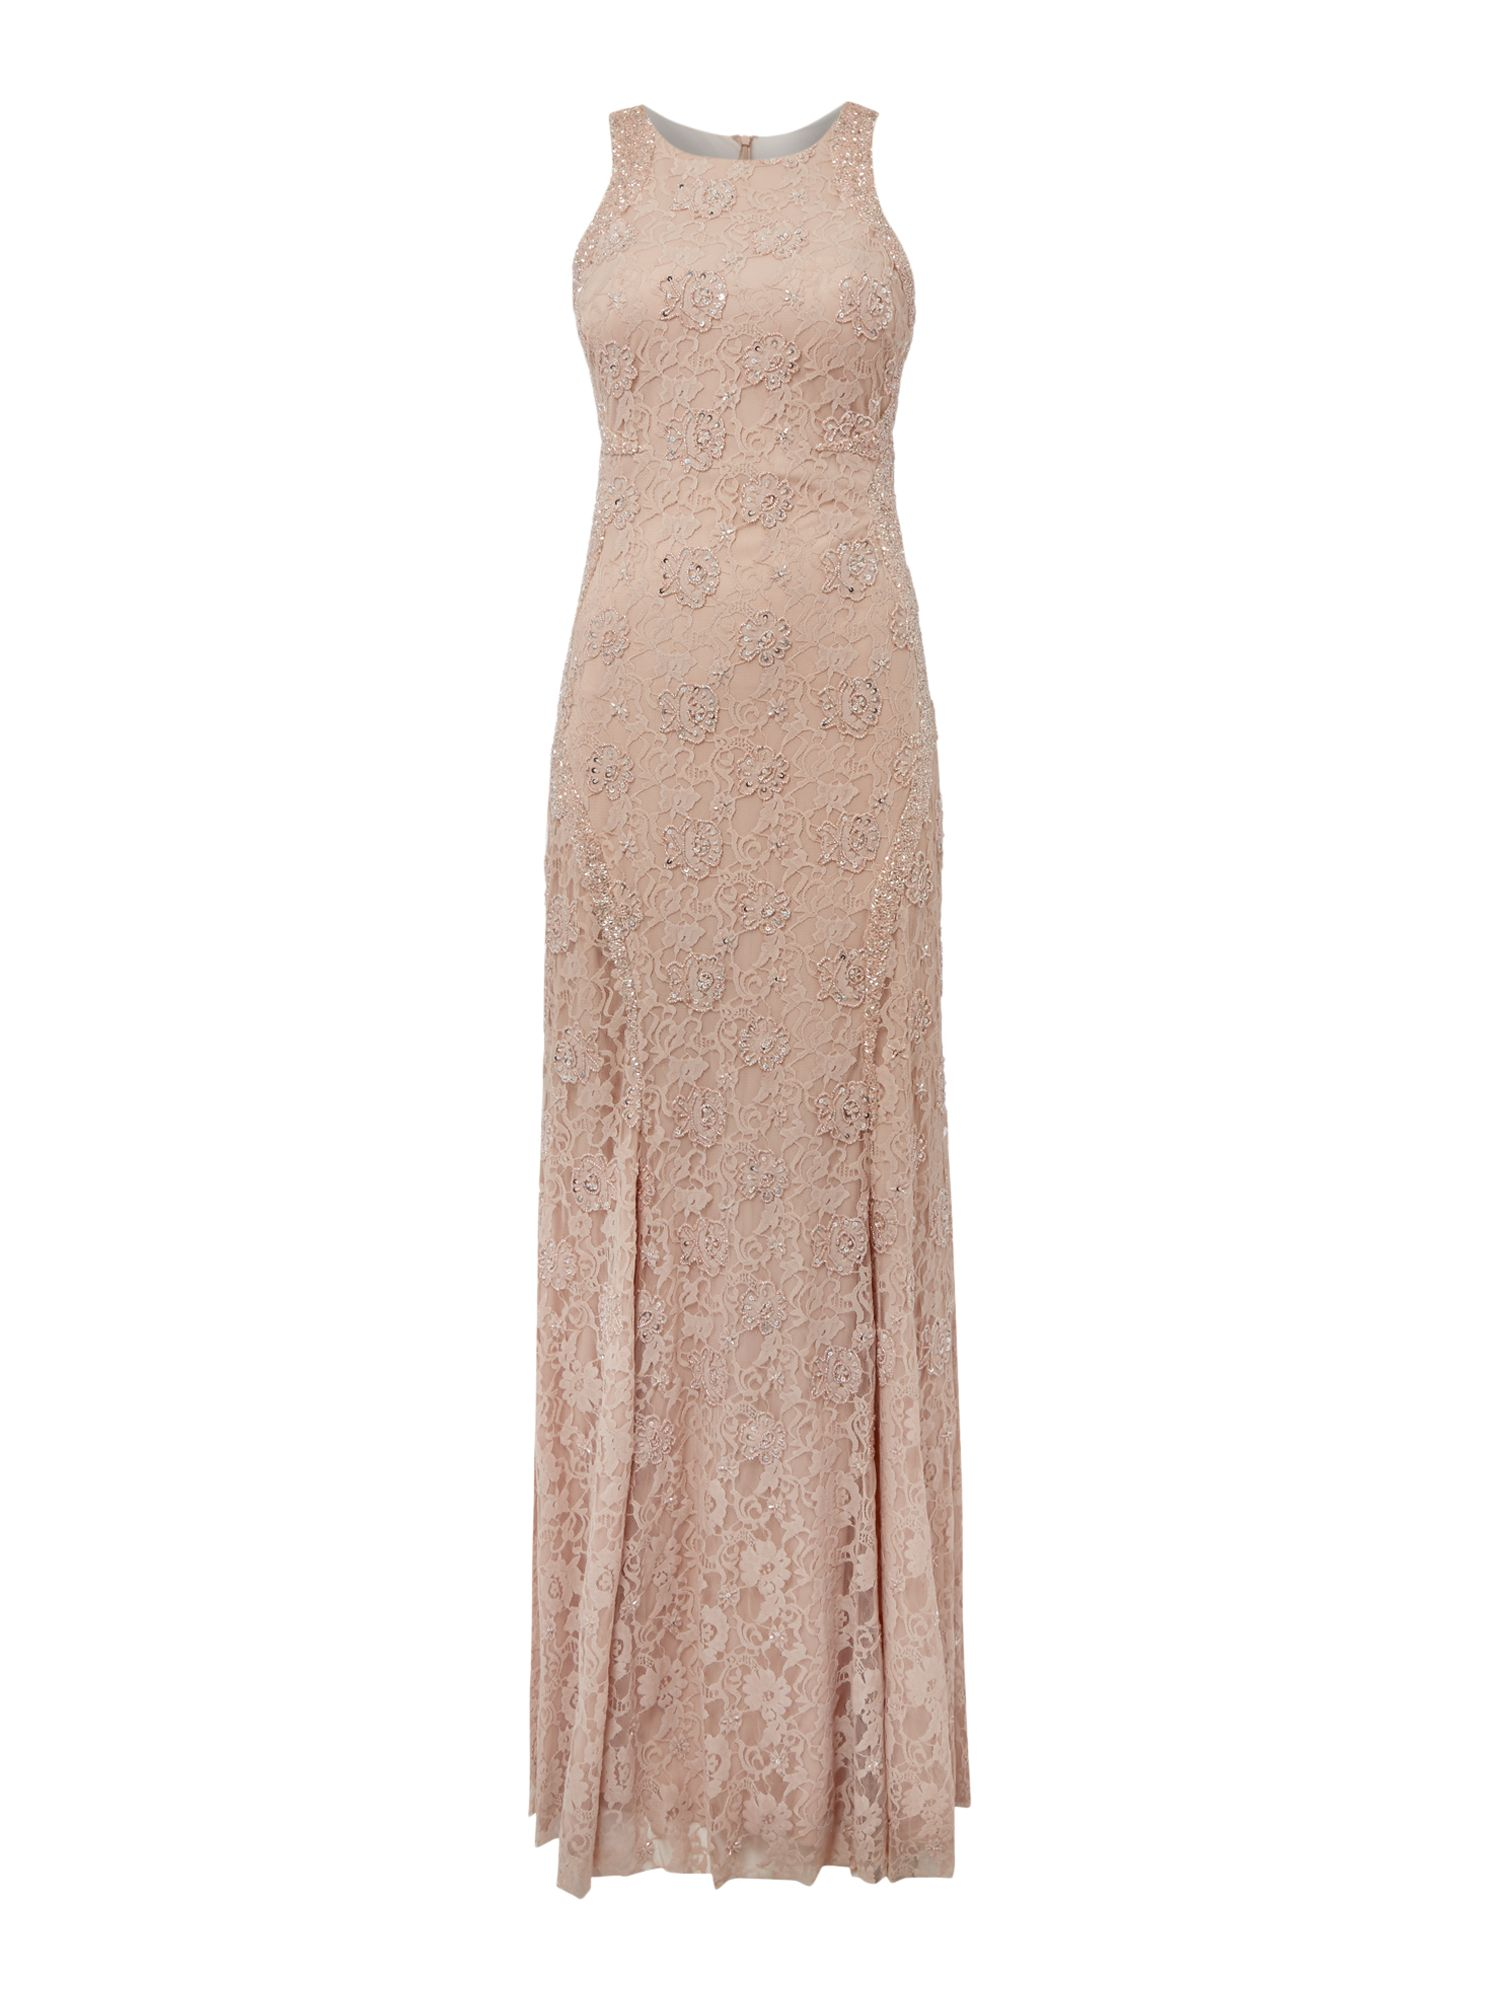 Adrianna Papell Lace sequin dress with embellished shaping, Pink